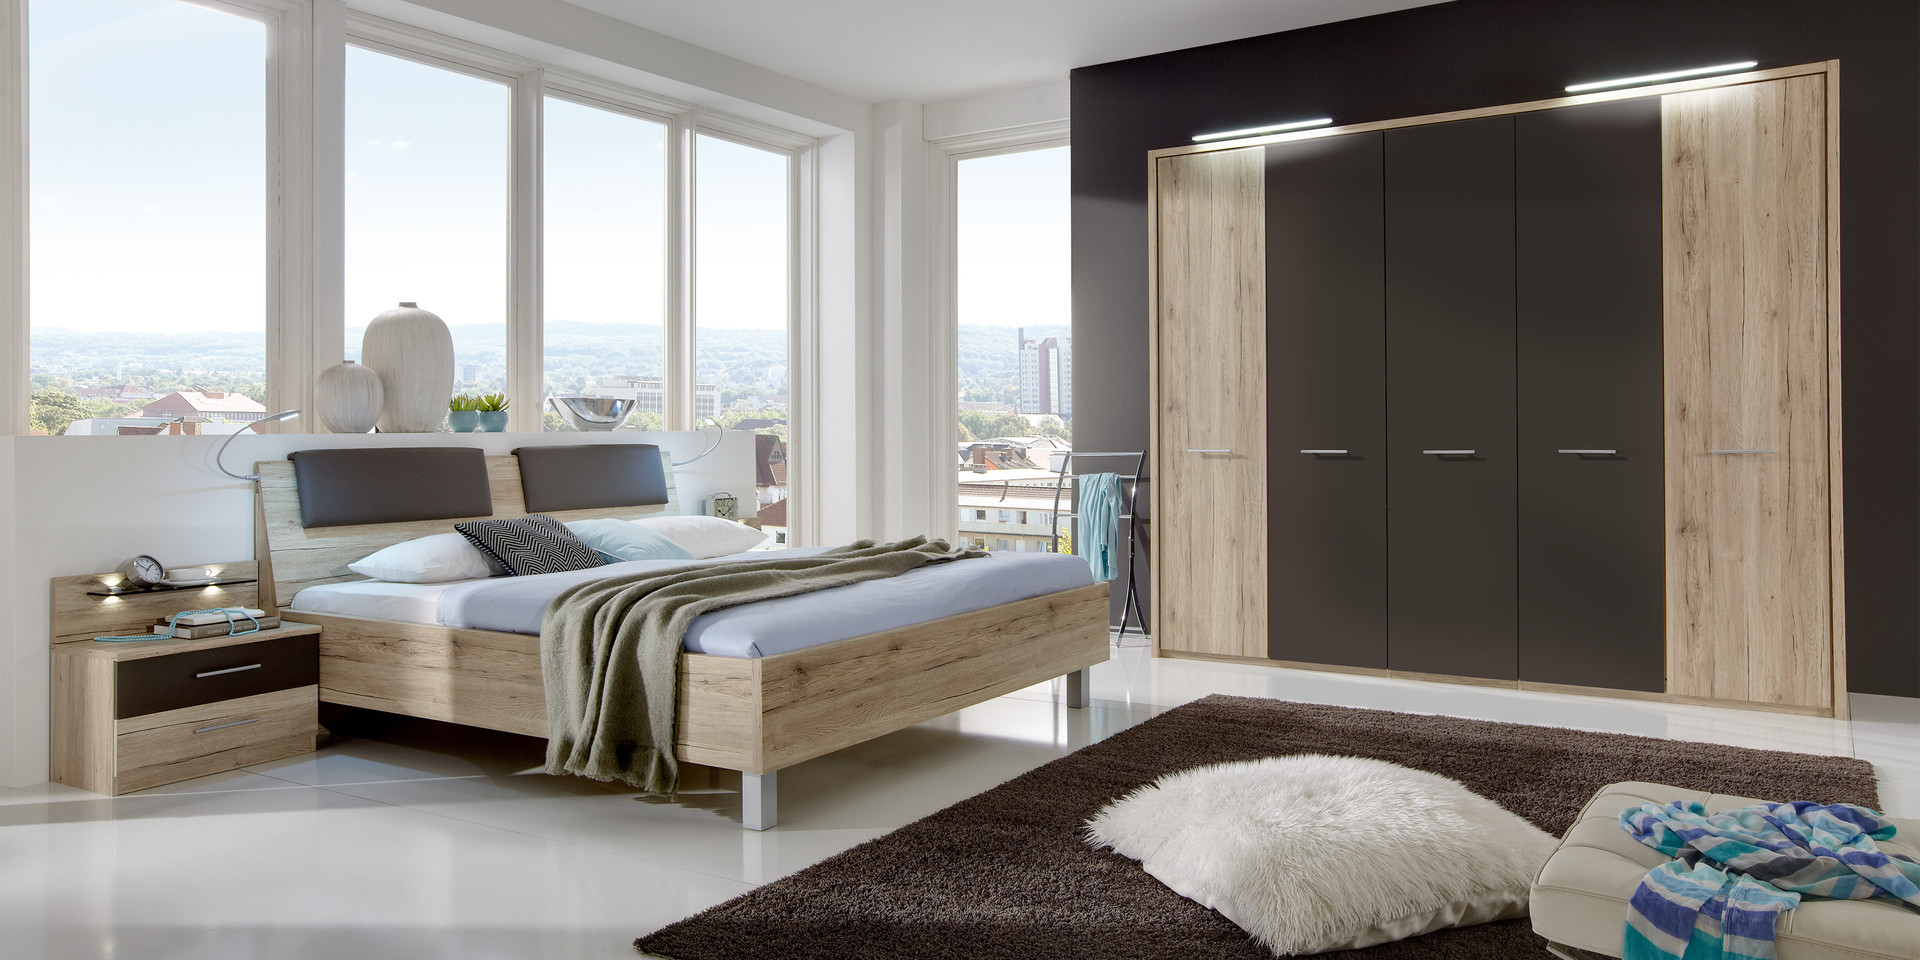 betten selber machen. Black Bedroom Furniture Sets. Home Design Ideas